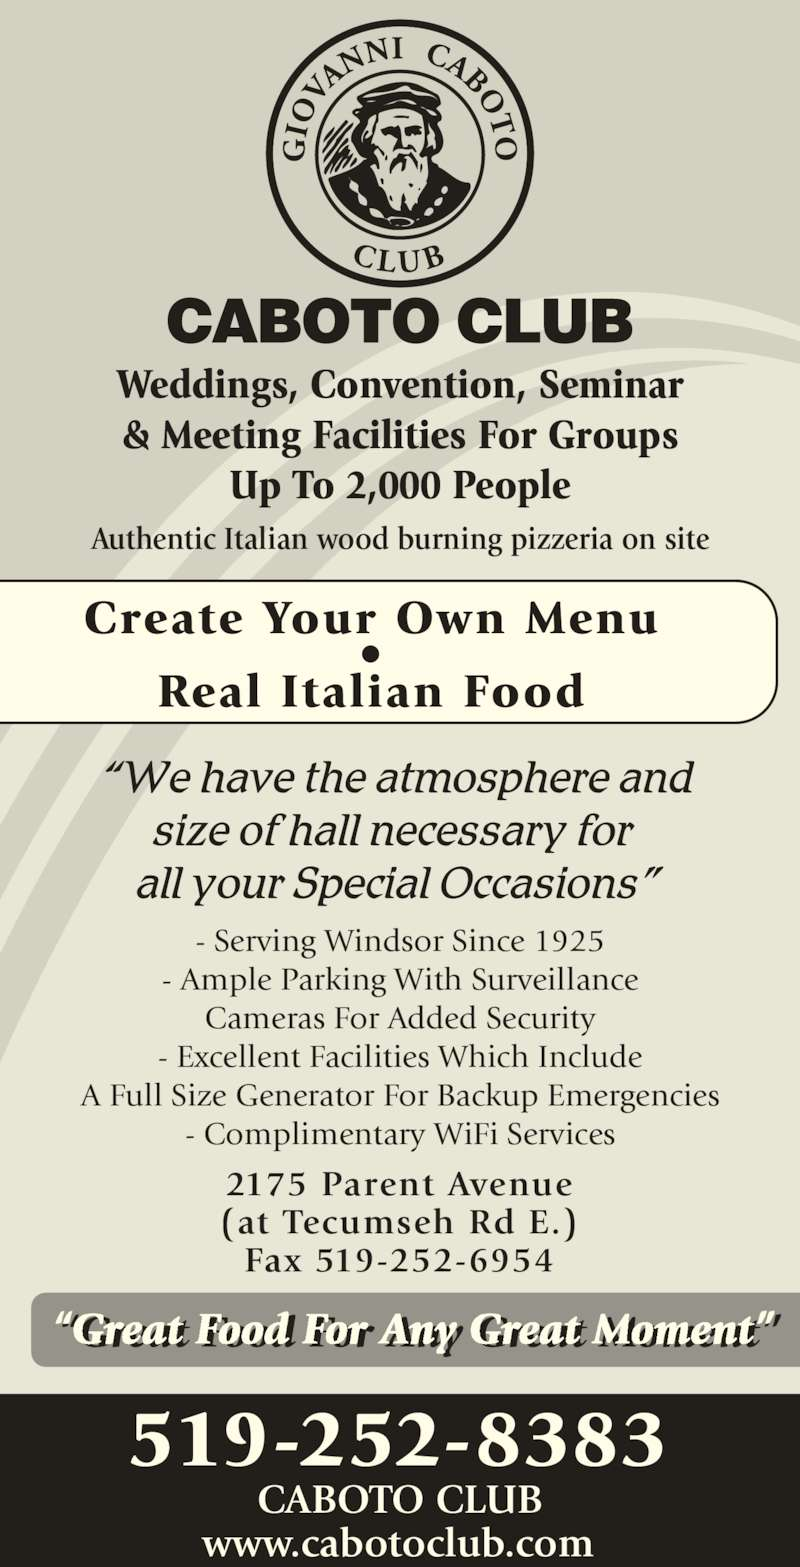 "Caboto Club (519-252-8383) - Display Ad - Create Your Own Menu • Real Italian Food Weddings, Convention, Seminar & Meeting Facilities For Groups Up To 2,000 People - Serving Windsor Since 1925 - Ample Parking With Surveillance Cameras For Added Security - Excellent Facilities Which Include A Full Size Generator For Backup Emergencies - Complimentary WiFi Services 519-252-8383 www.cabotoclub.com Authentic Italian wood burning pizzeria on site 2175 Parent Avenue (at Tecumseh Rd E.) Fax 519-252-6954 ""Great Food For Any Great Moment""r t  r  r t t CABOTO CLUB"